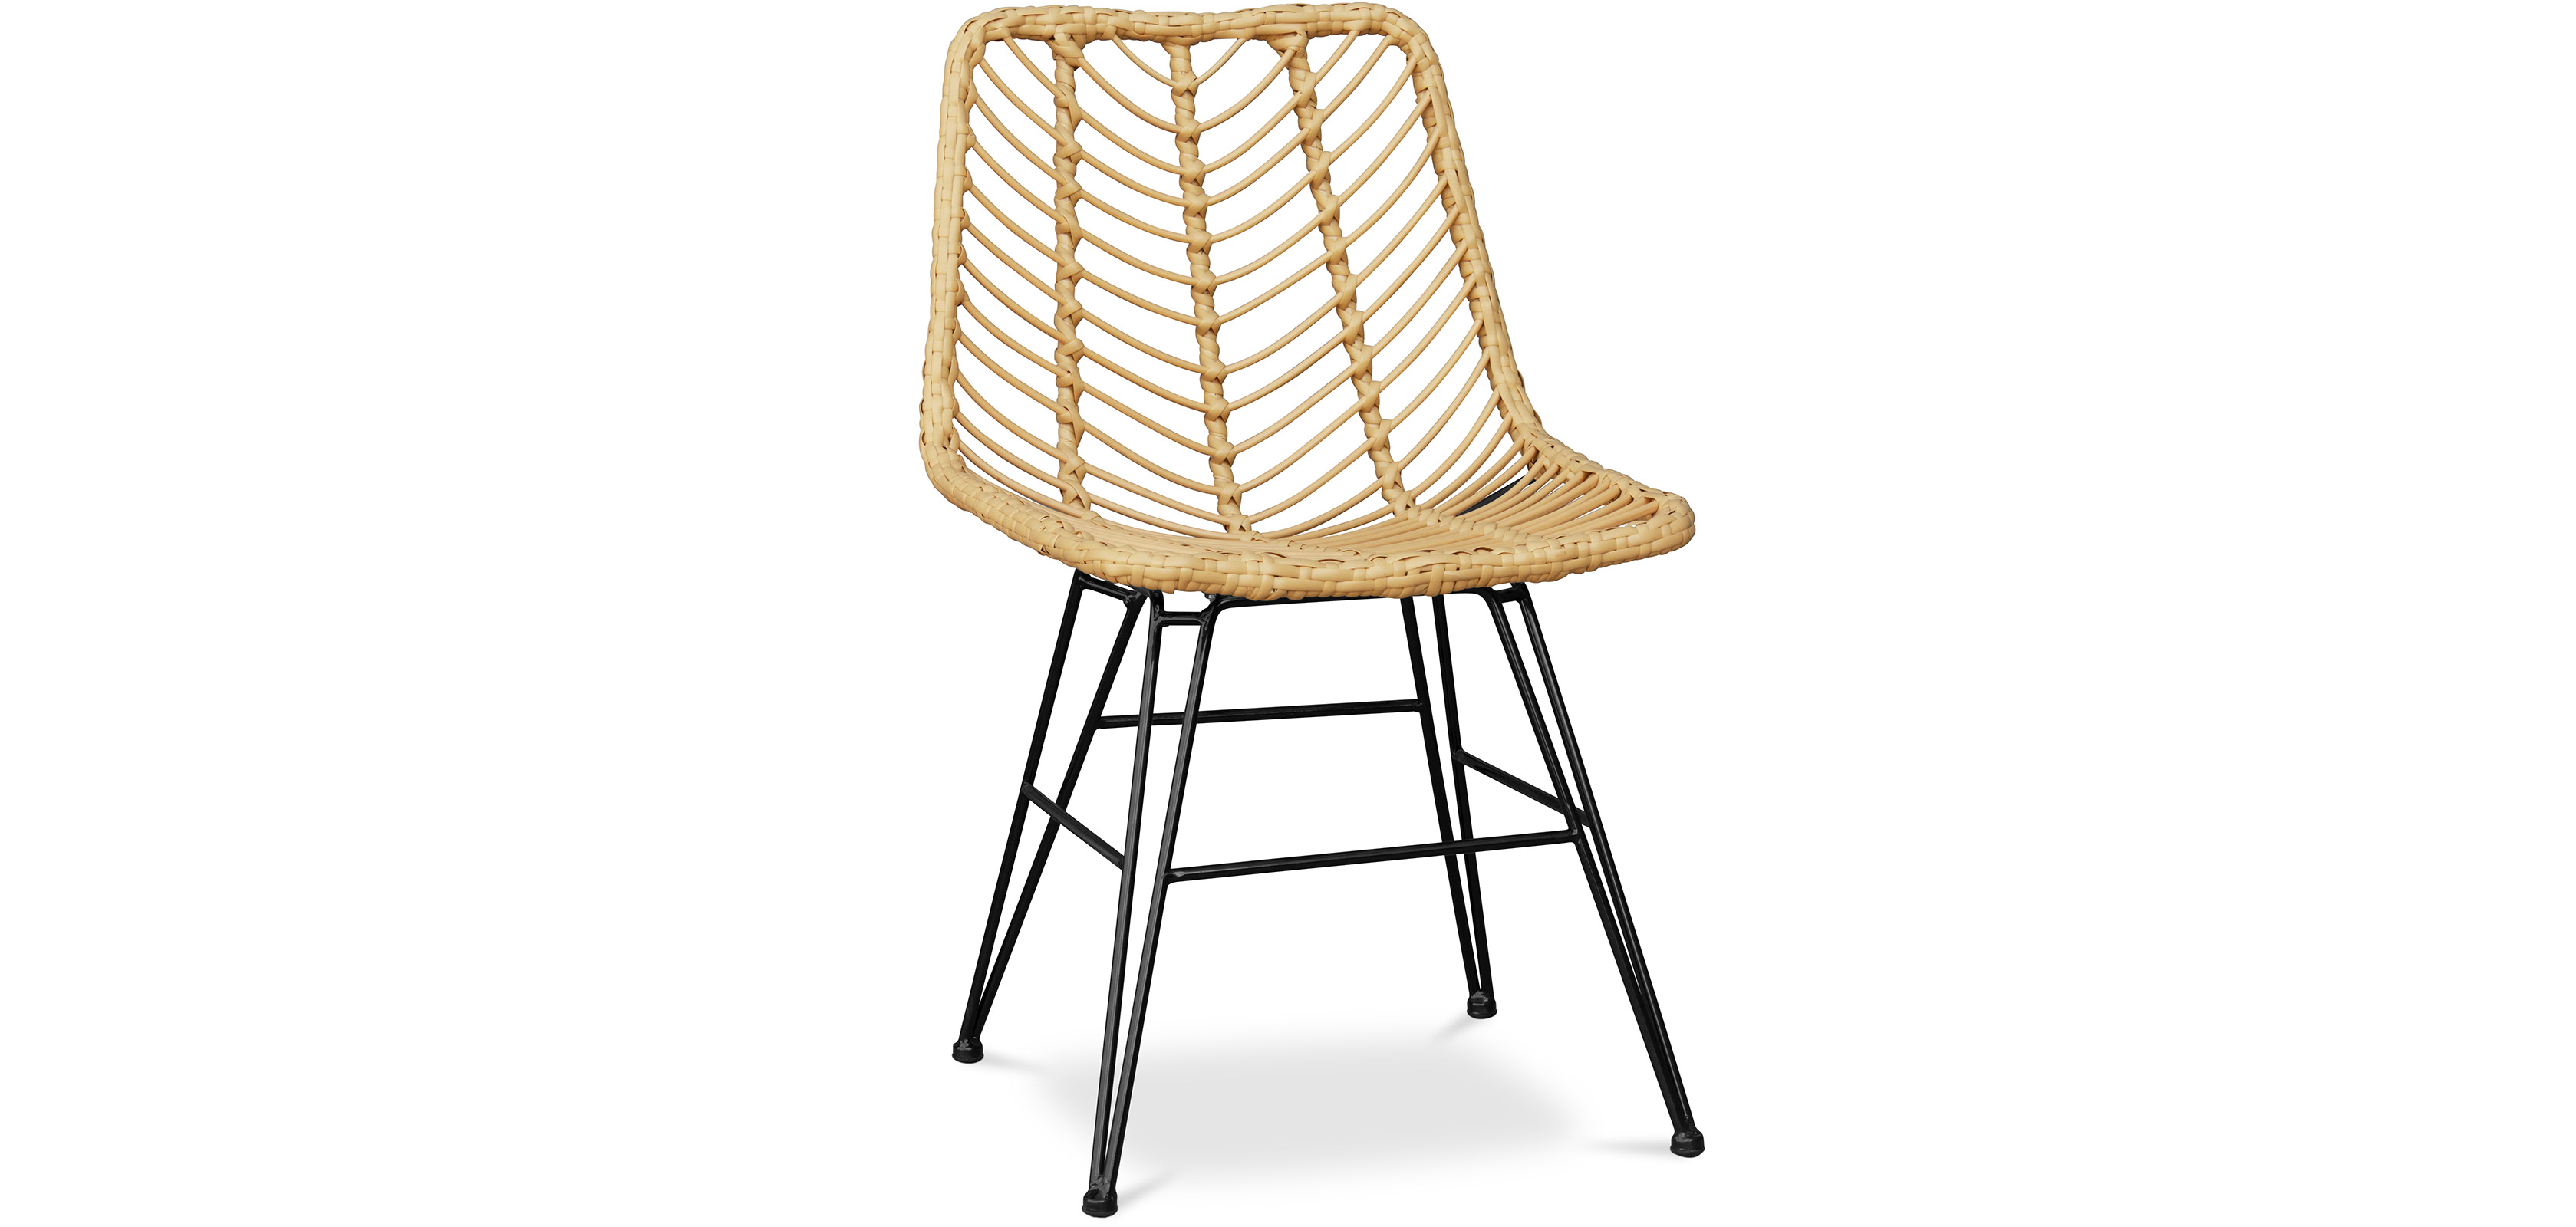 Buy Synthetic wicker dining chair - Valery Natural wood 59254 - in the UK